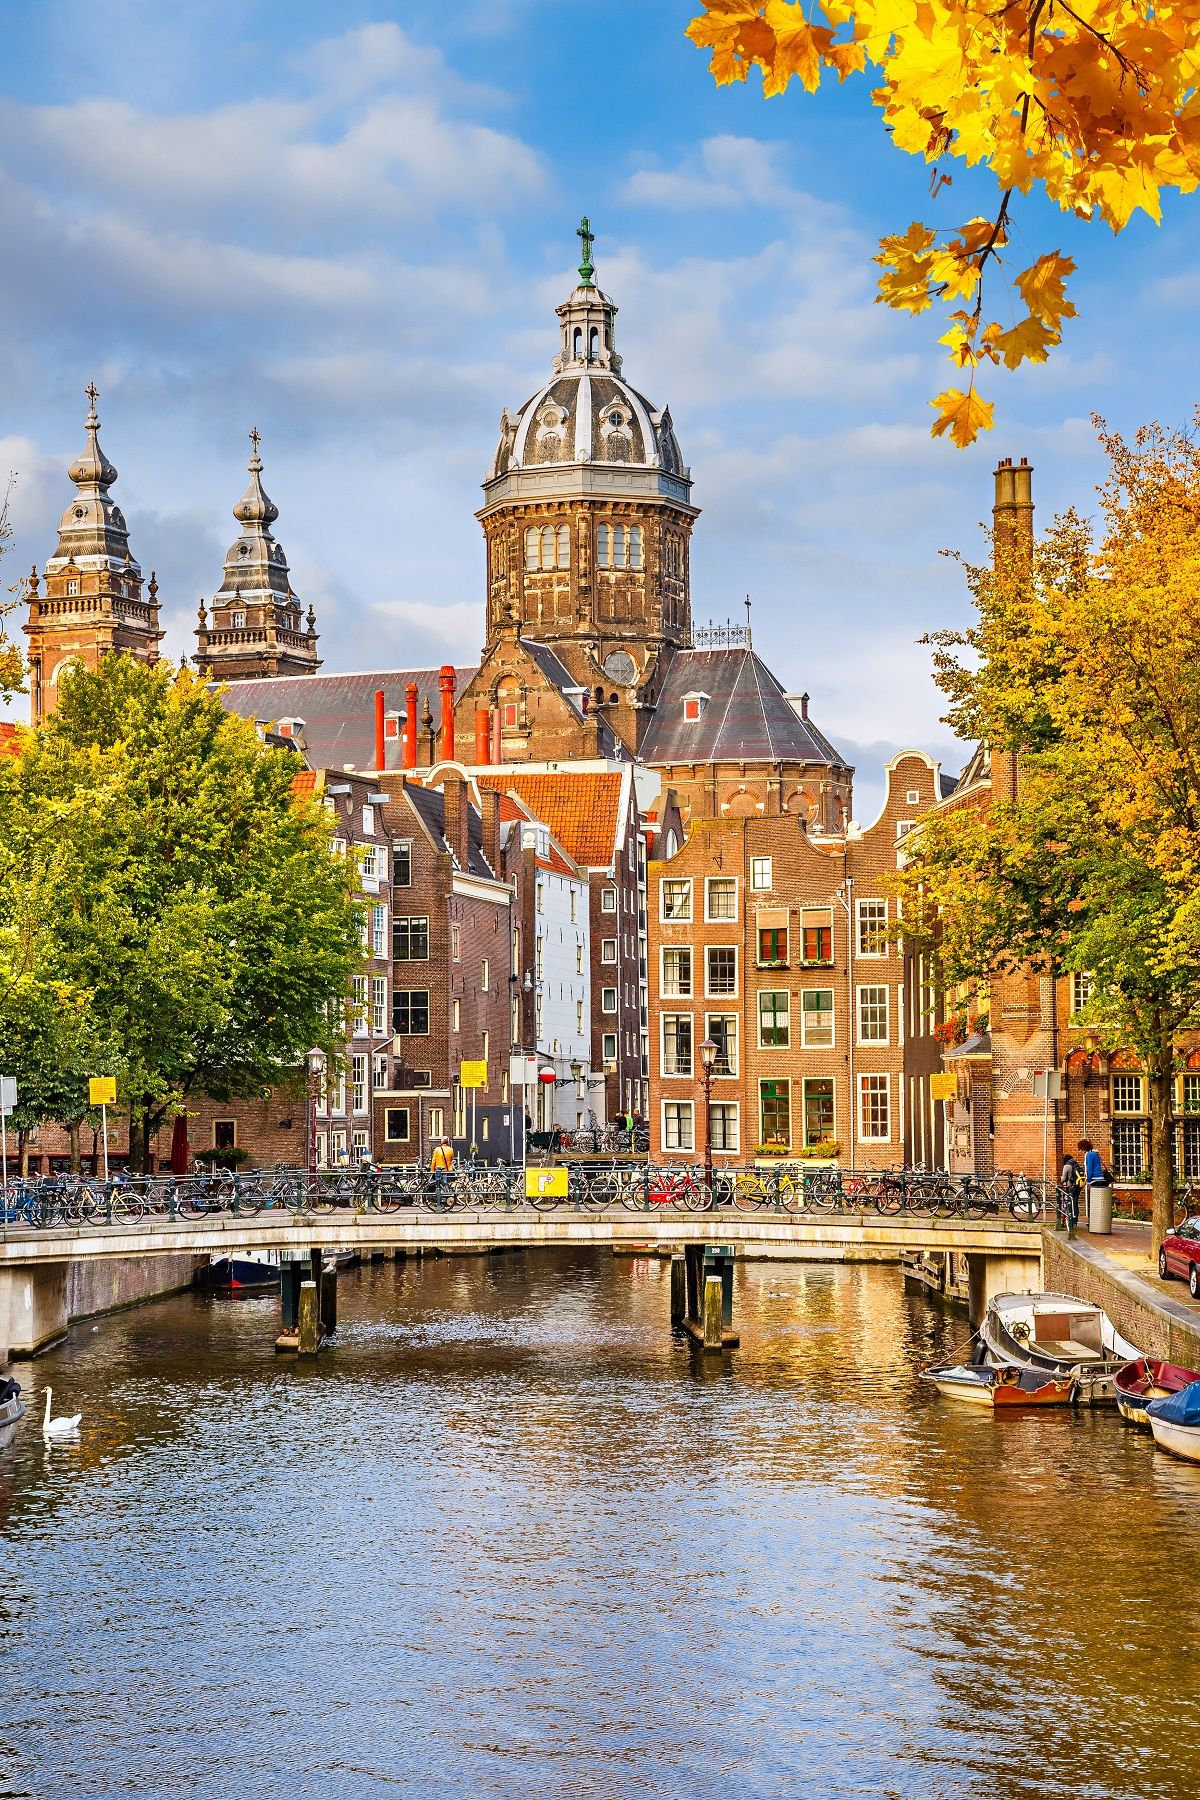 St. Nicholas Church is Amsterdam's most important Roman Catholic Church and is one of the city's most recognizable icons thanks to striking Neo-Baroque and Neo-Renaissance features. See it on your trip to the Netherlands!